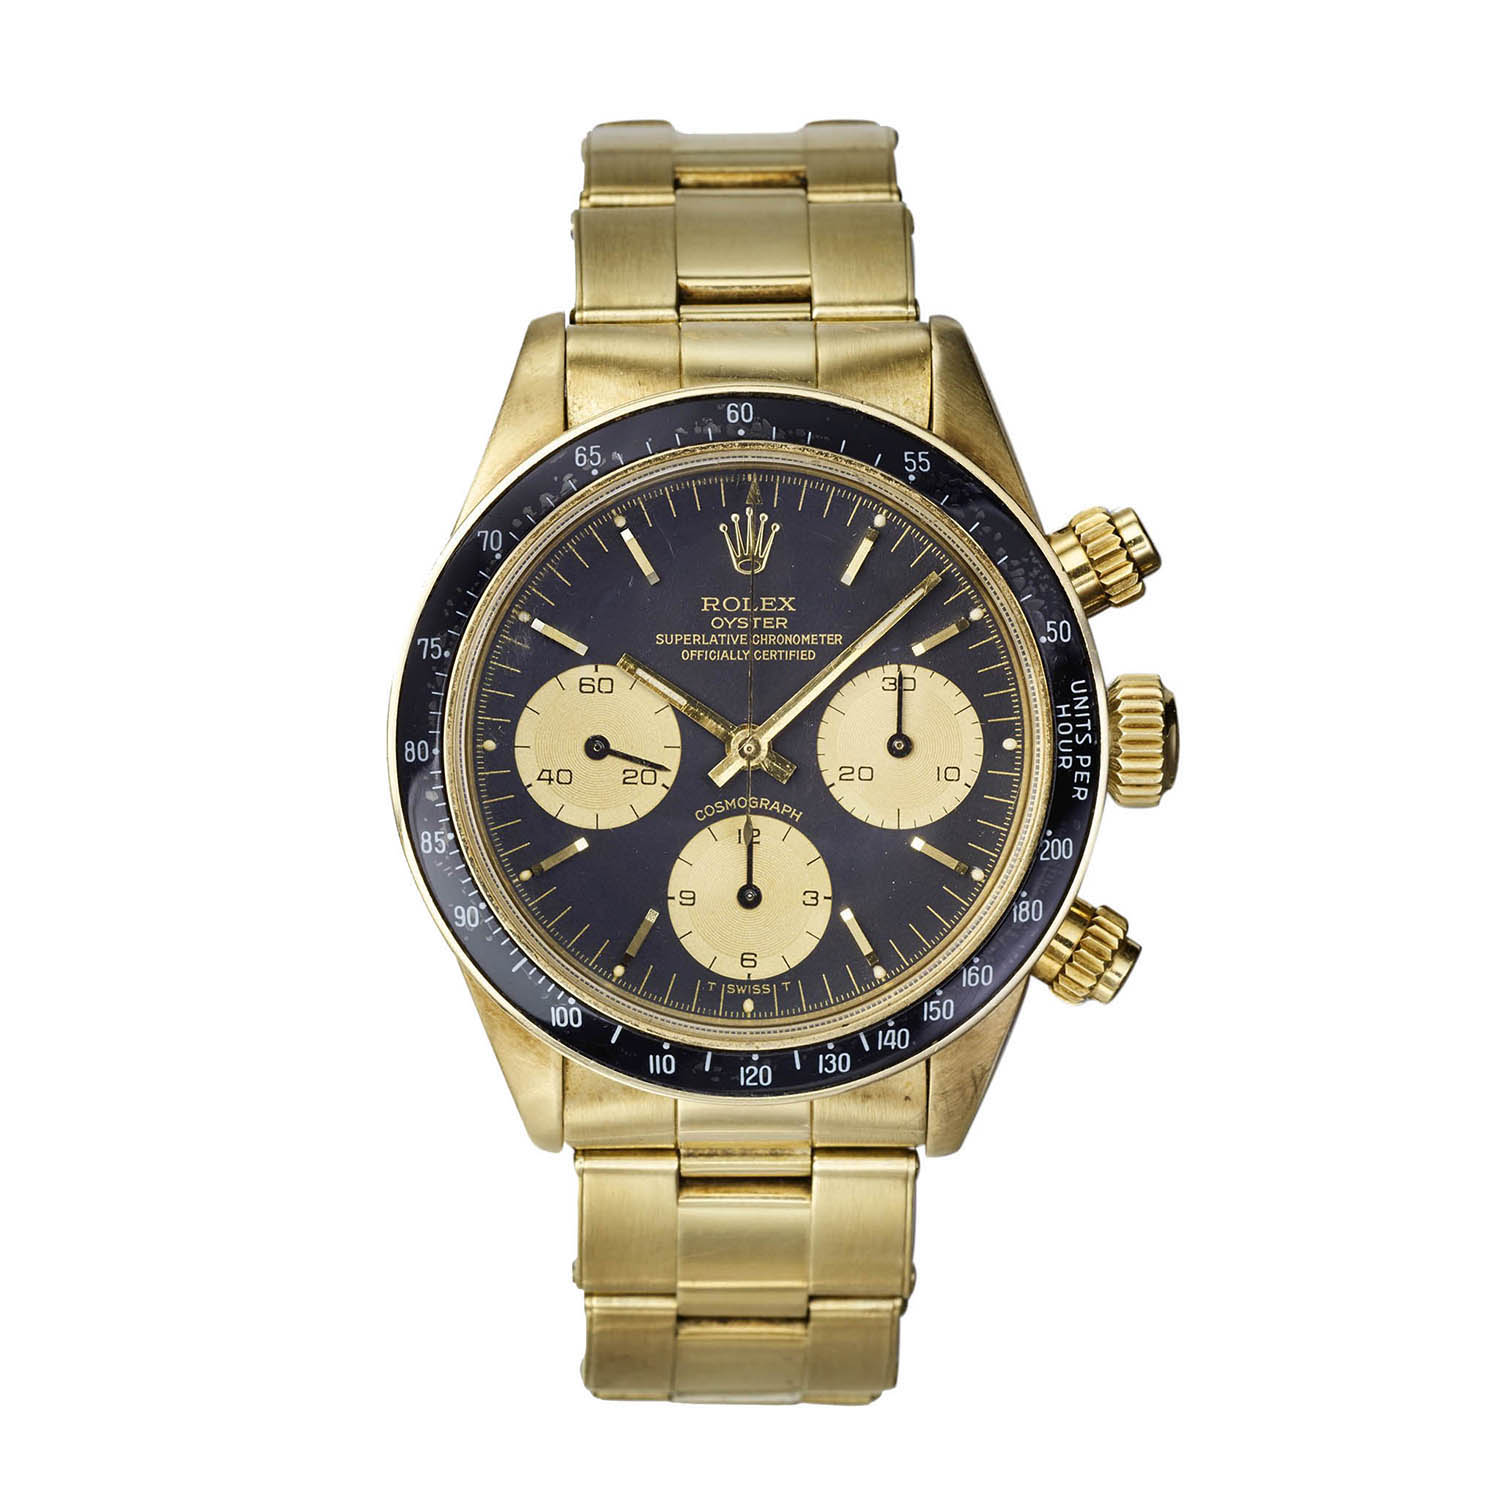 Rolex 18K Yellow Gold Daytona Wristwatch, Serial FL41775